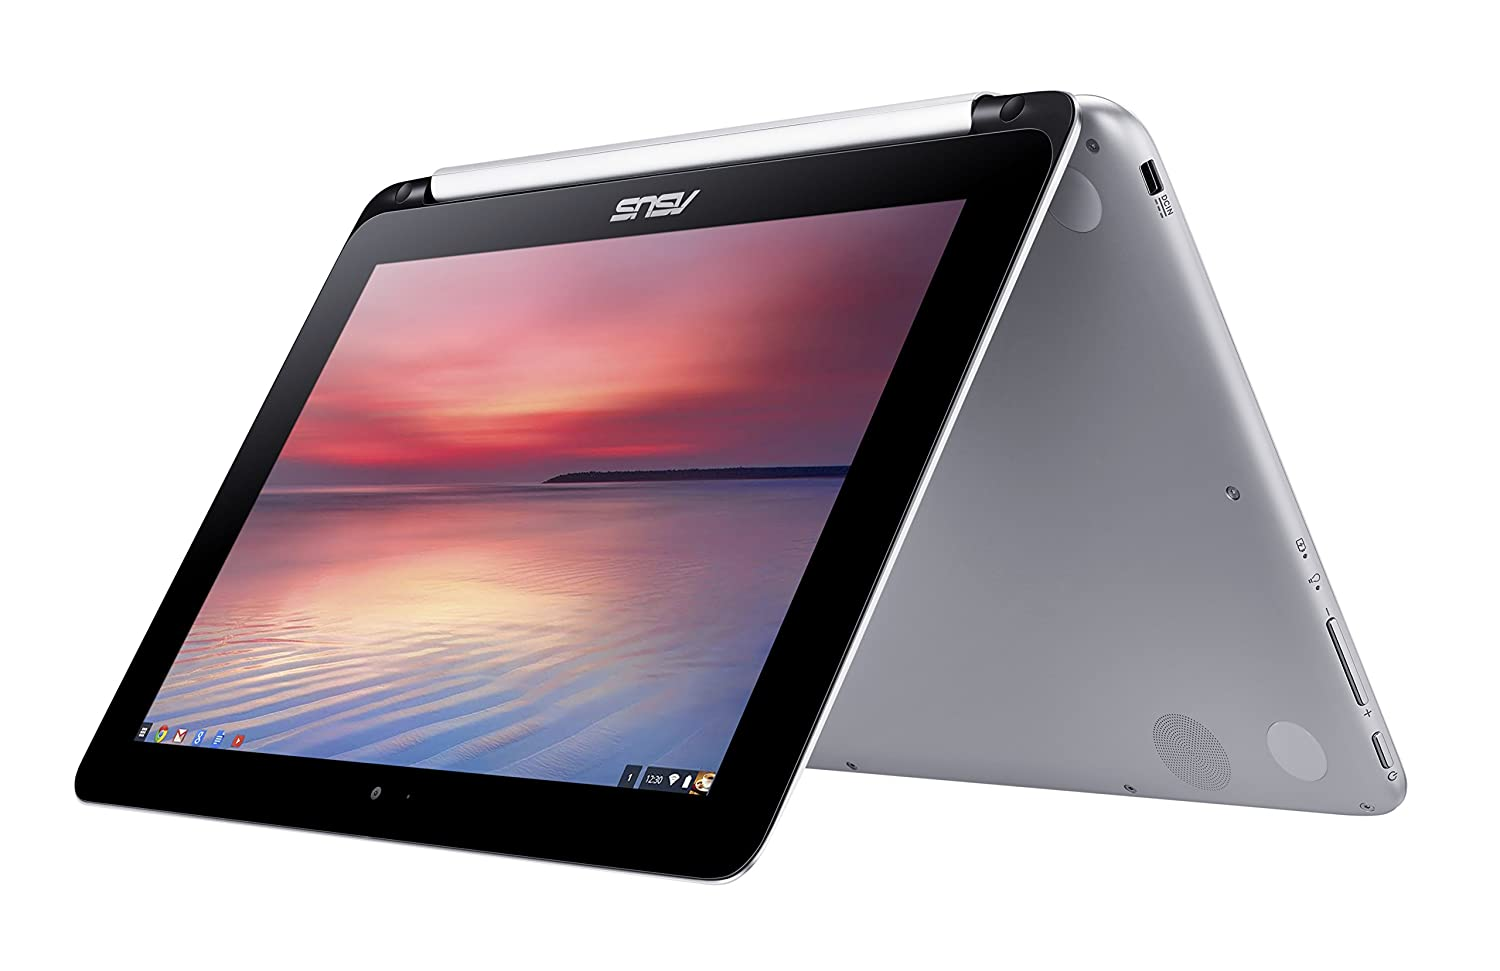 Asus C100pa Db01 Chromebook Flip 101 Touchscreen P 03 Samsung Travell Charger Branded 21a Micro Usb Laptop Quad Core 2gb 16gb Ssd Aluminum Chassis Computers Accessories